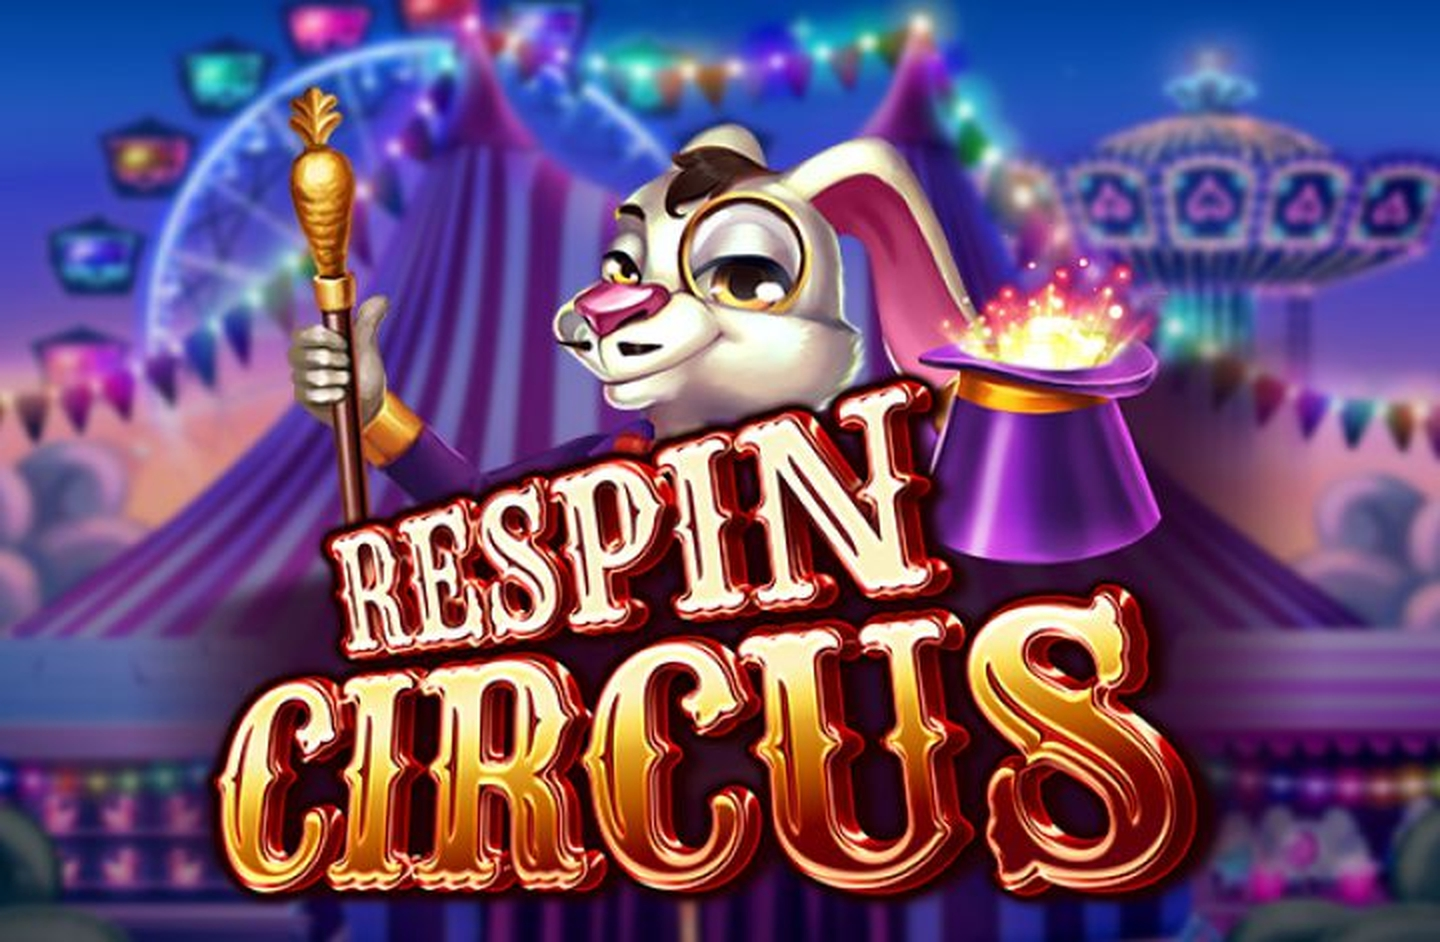 The Respin Circus Online Slot Demo Game by ELK Studios